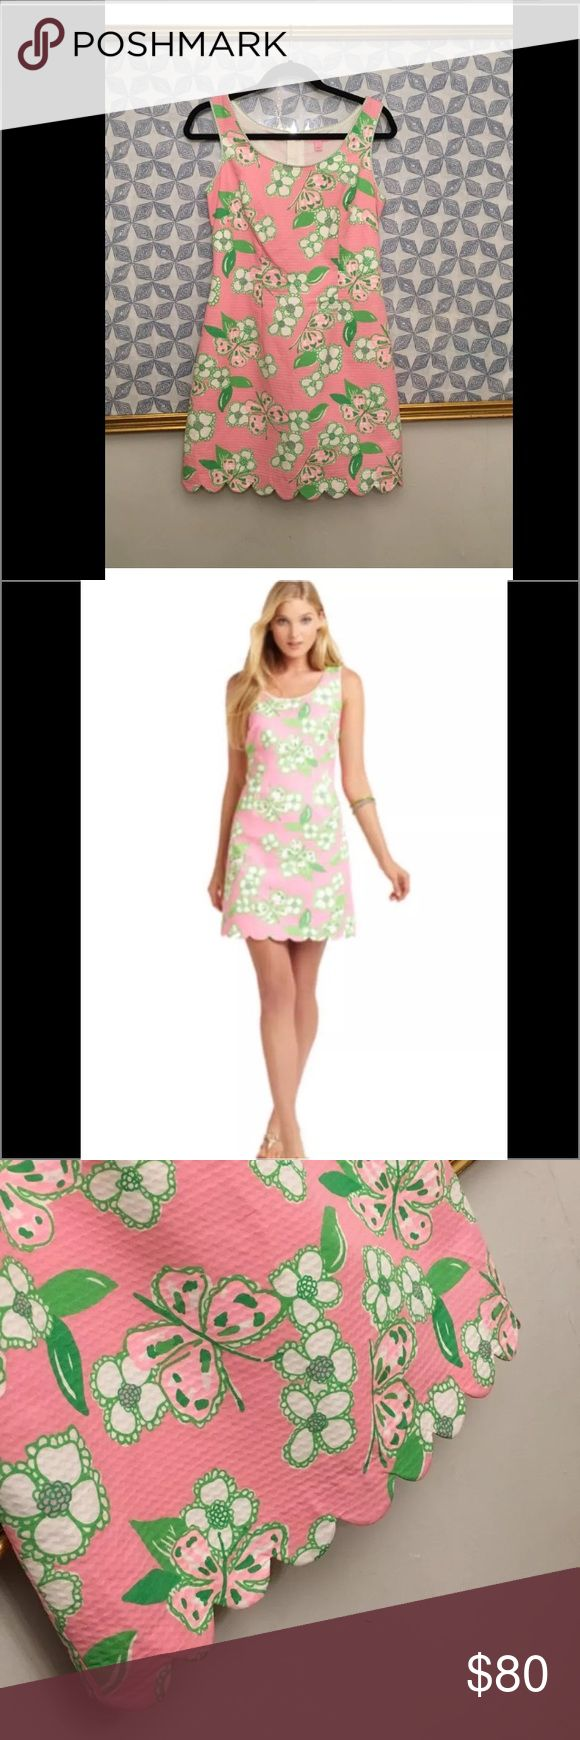 """Lilly Pulitzer Hard To Find Size This style was crazy popular and sold out quickly!A classic shift in a great print, classic Lilly colors with bows down the back. A slim-fitting cut accentuates your best curves and the scoop neckline will lend you an air of unmatched grace and sophistication. Shift Dress With Scalloped Hem And Bow Back. 19 1/2"""" From Natural Waist To Hem. Wave Jacquard (100% Cotton). Machine Wash Cold. Imported. Item is in excellent pre loved condition :) Lilly Pulitzer…"""